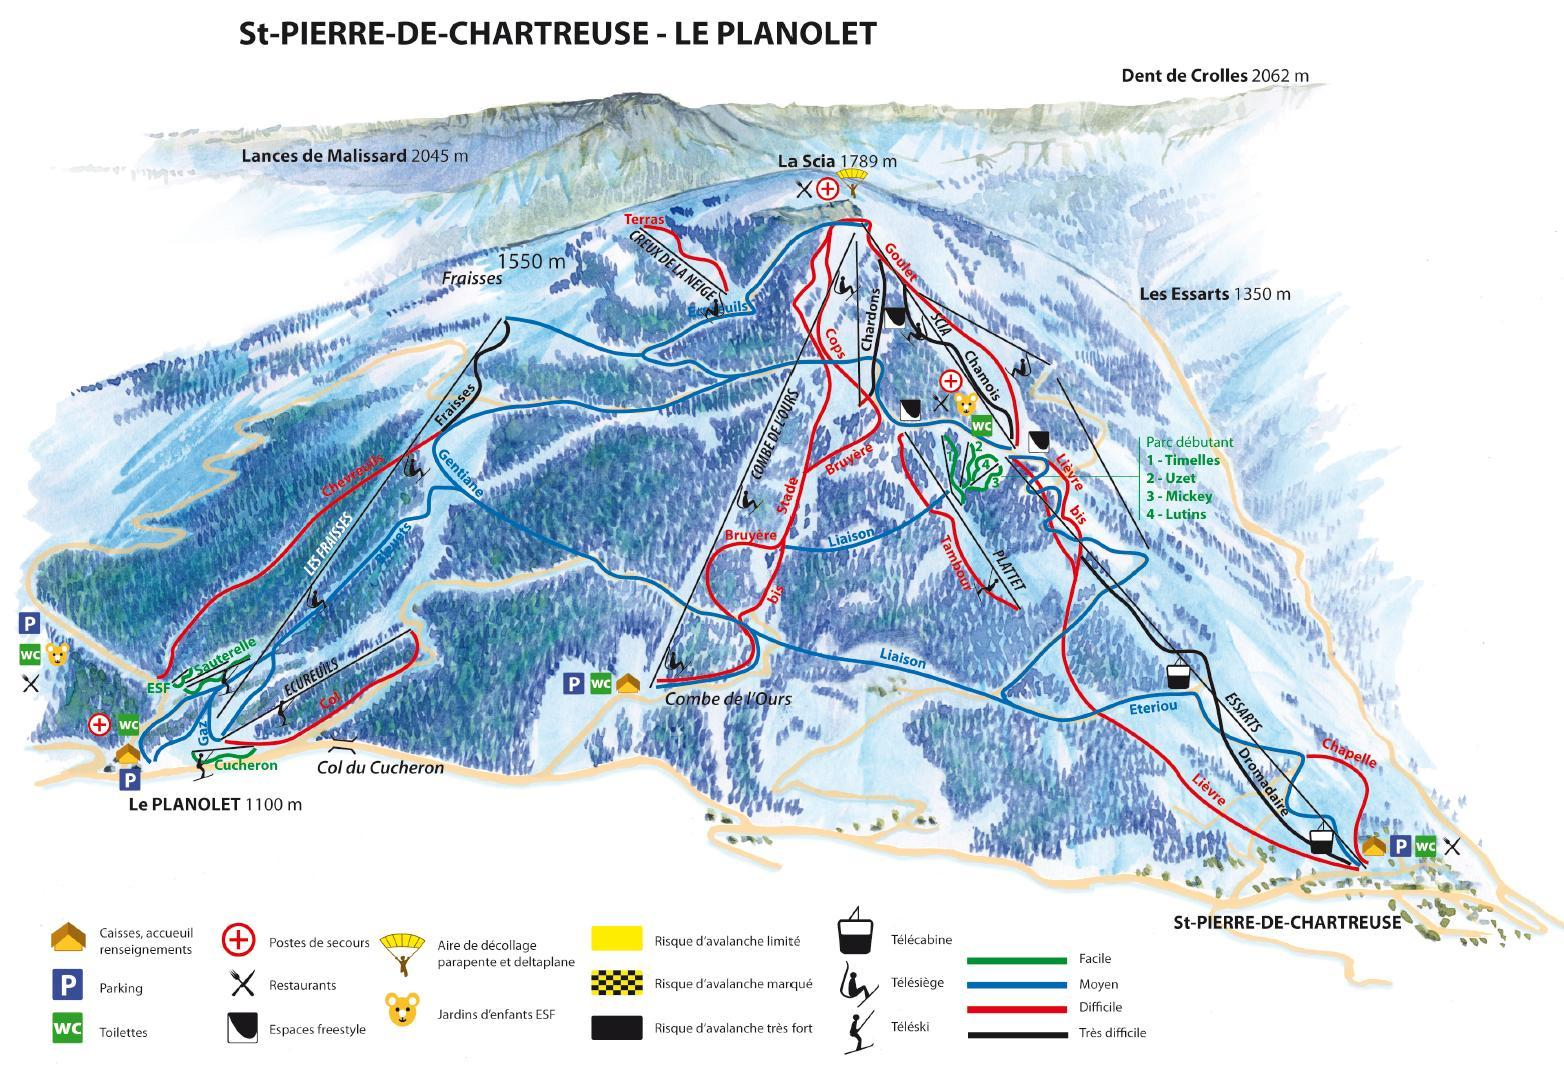 saint pierre de chartreuse le planolet plan des pistes de ski saint pierre de chartreuse. Black Bedroom Furniture Sets. Home Design Ideas